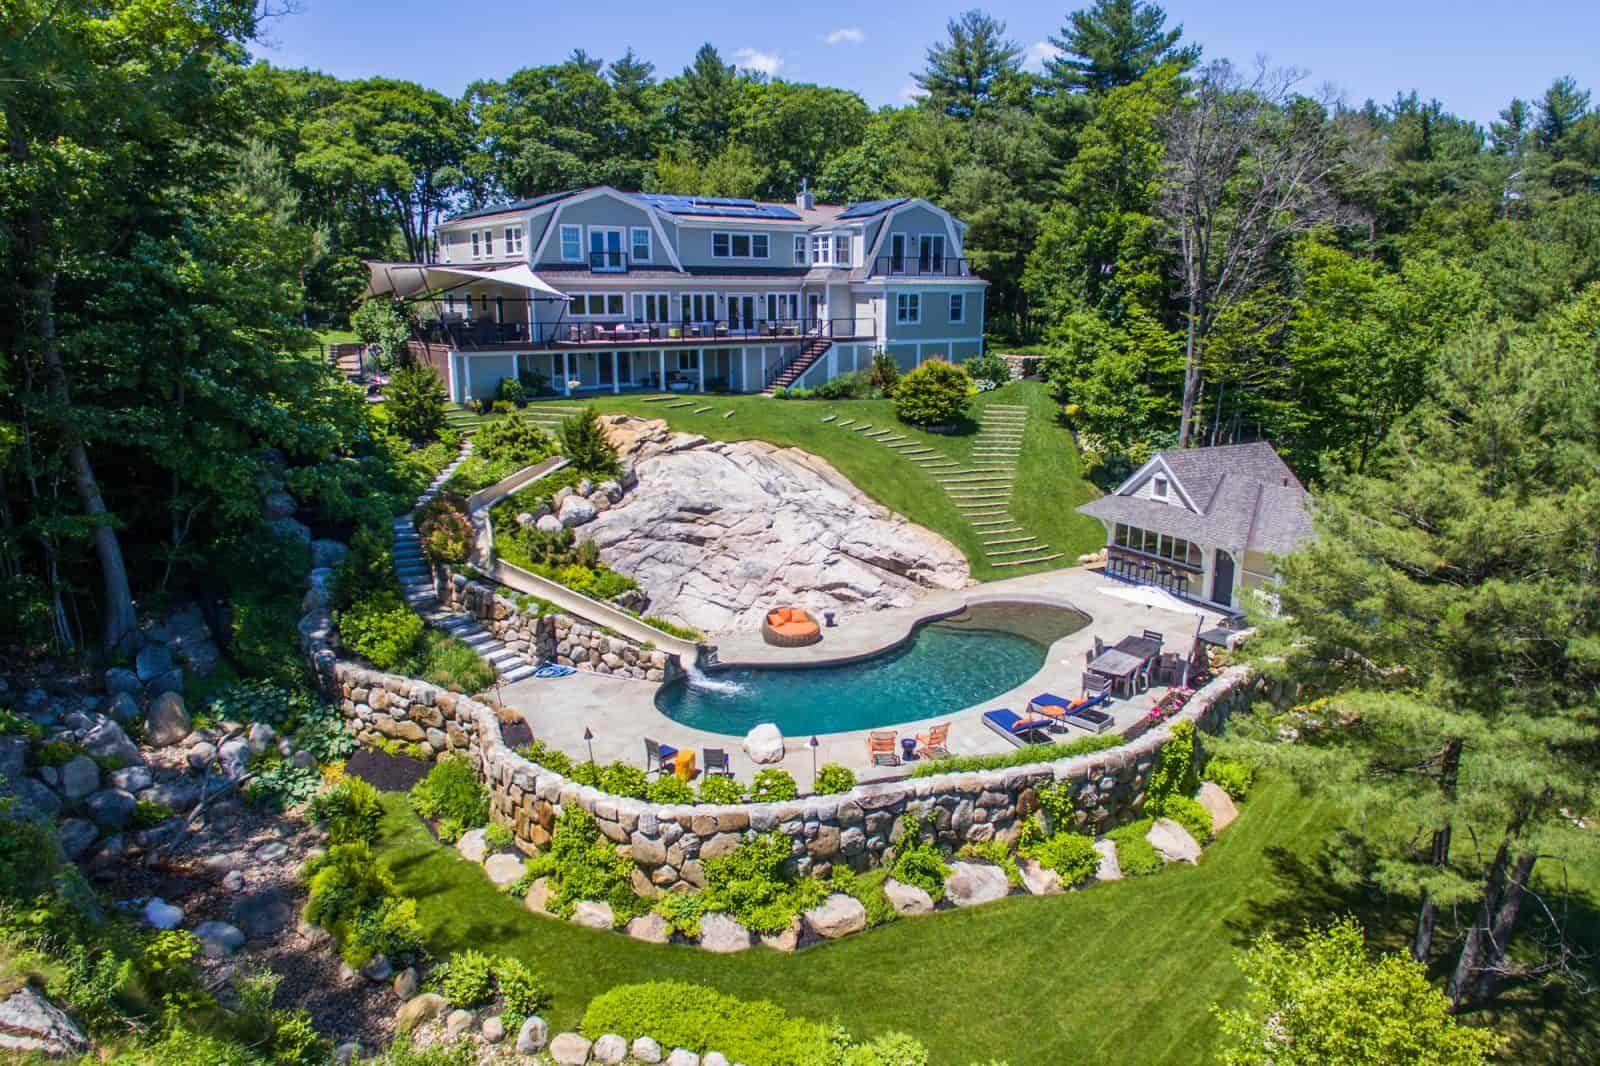 aerial drone photo of residential property in Massachusetts